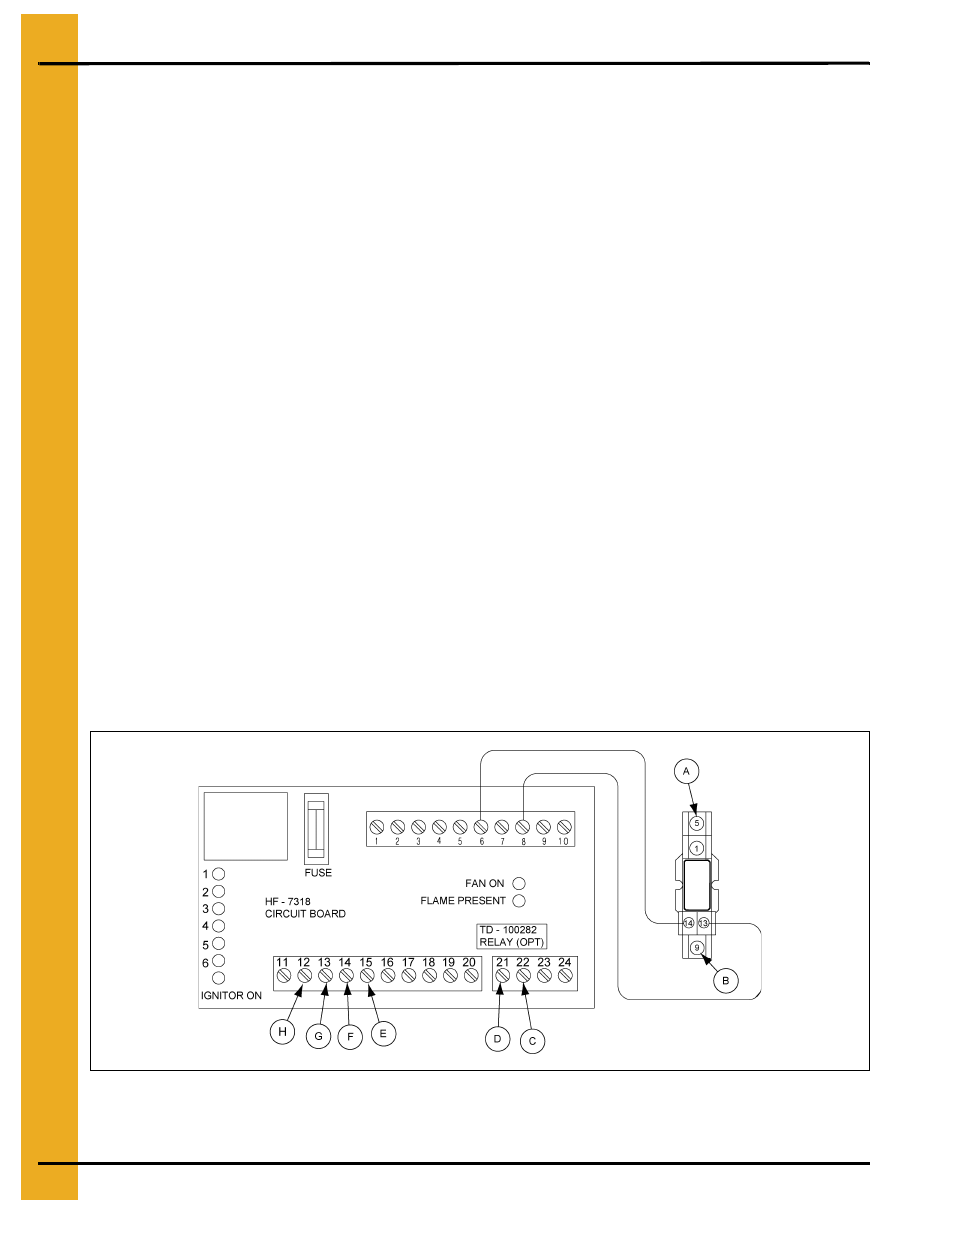 Second Heater Installation Chapter 6 Wiring A Relay Base For Units Using Hf 7318 Control Board Grain Systems Pneg 823 User Manual Page 16 42